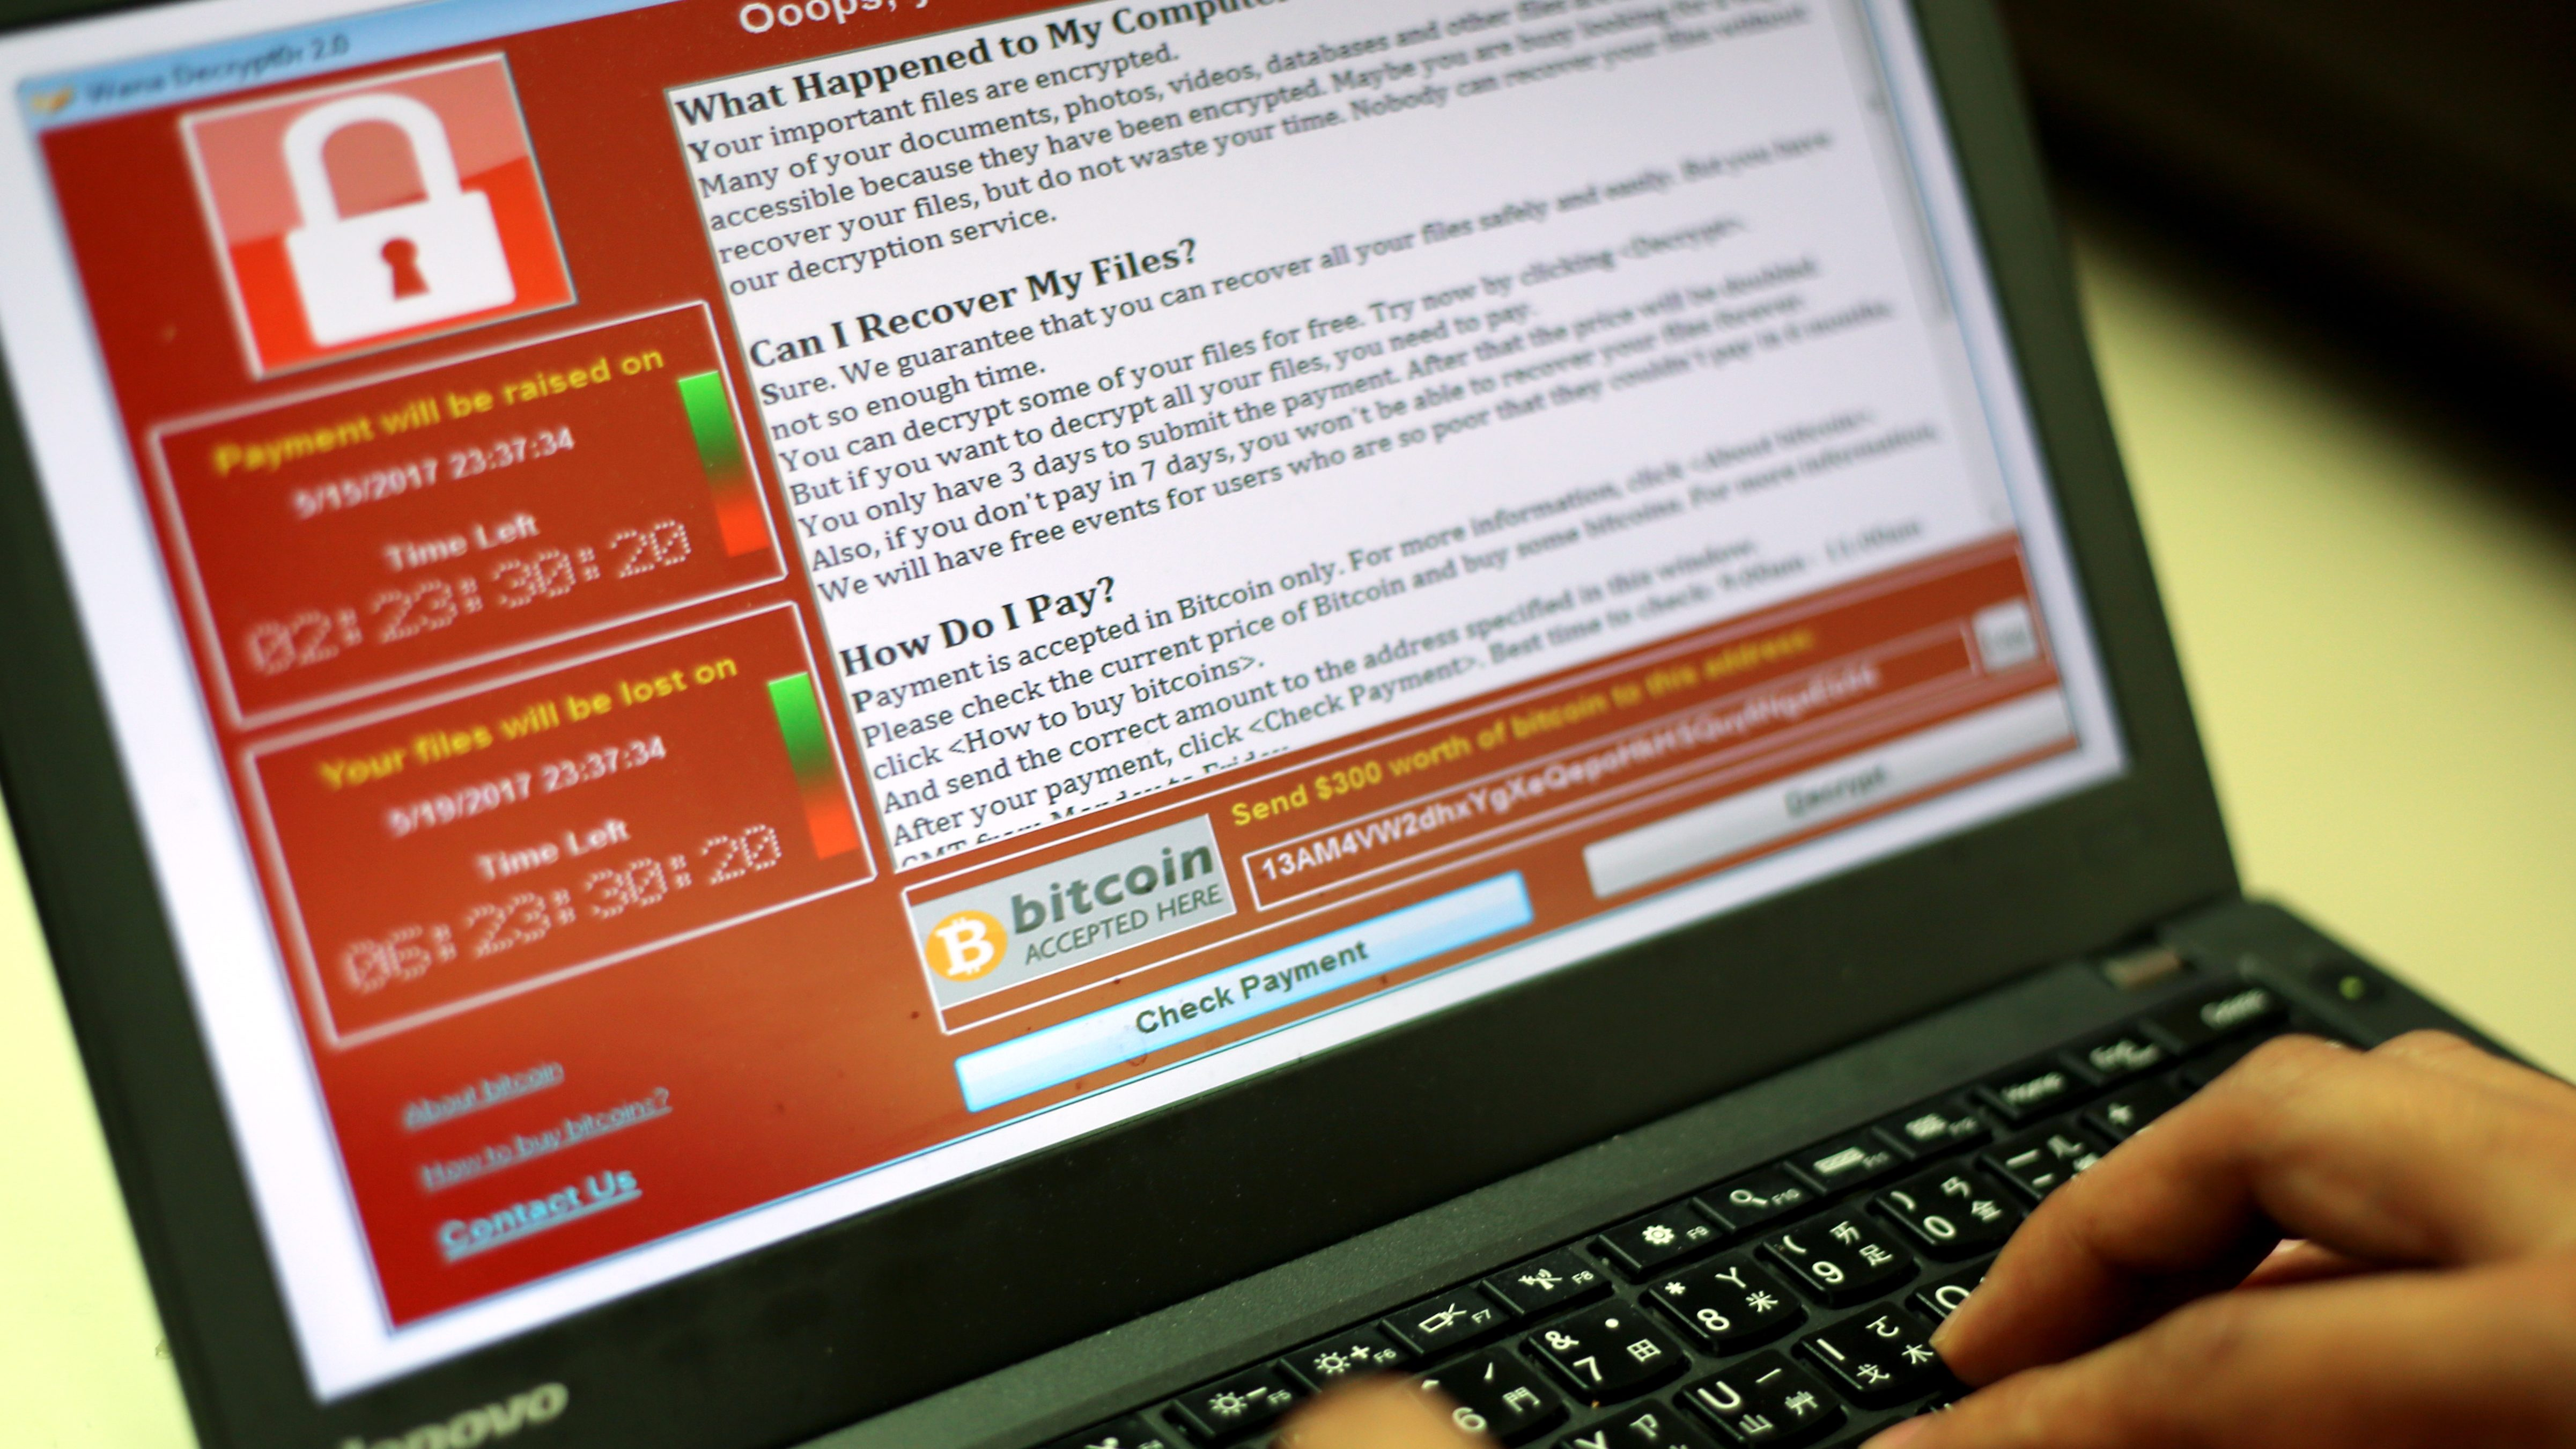 A programer shows a sample of a ransomware cyberattack on a laptop in Taipei, Taiwan, 13 May, 2017. According to news reports, a 'WannaCry' ransomware cyber attack hits thousands of computers in 99 countries encrypting files from affected computer units and demanding 300 US dollars through bitcoin to decrypt the files.